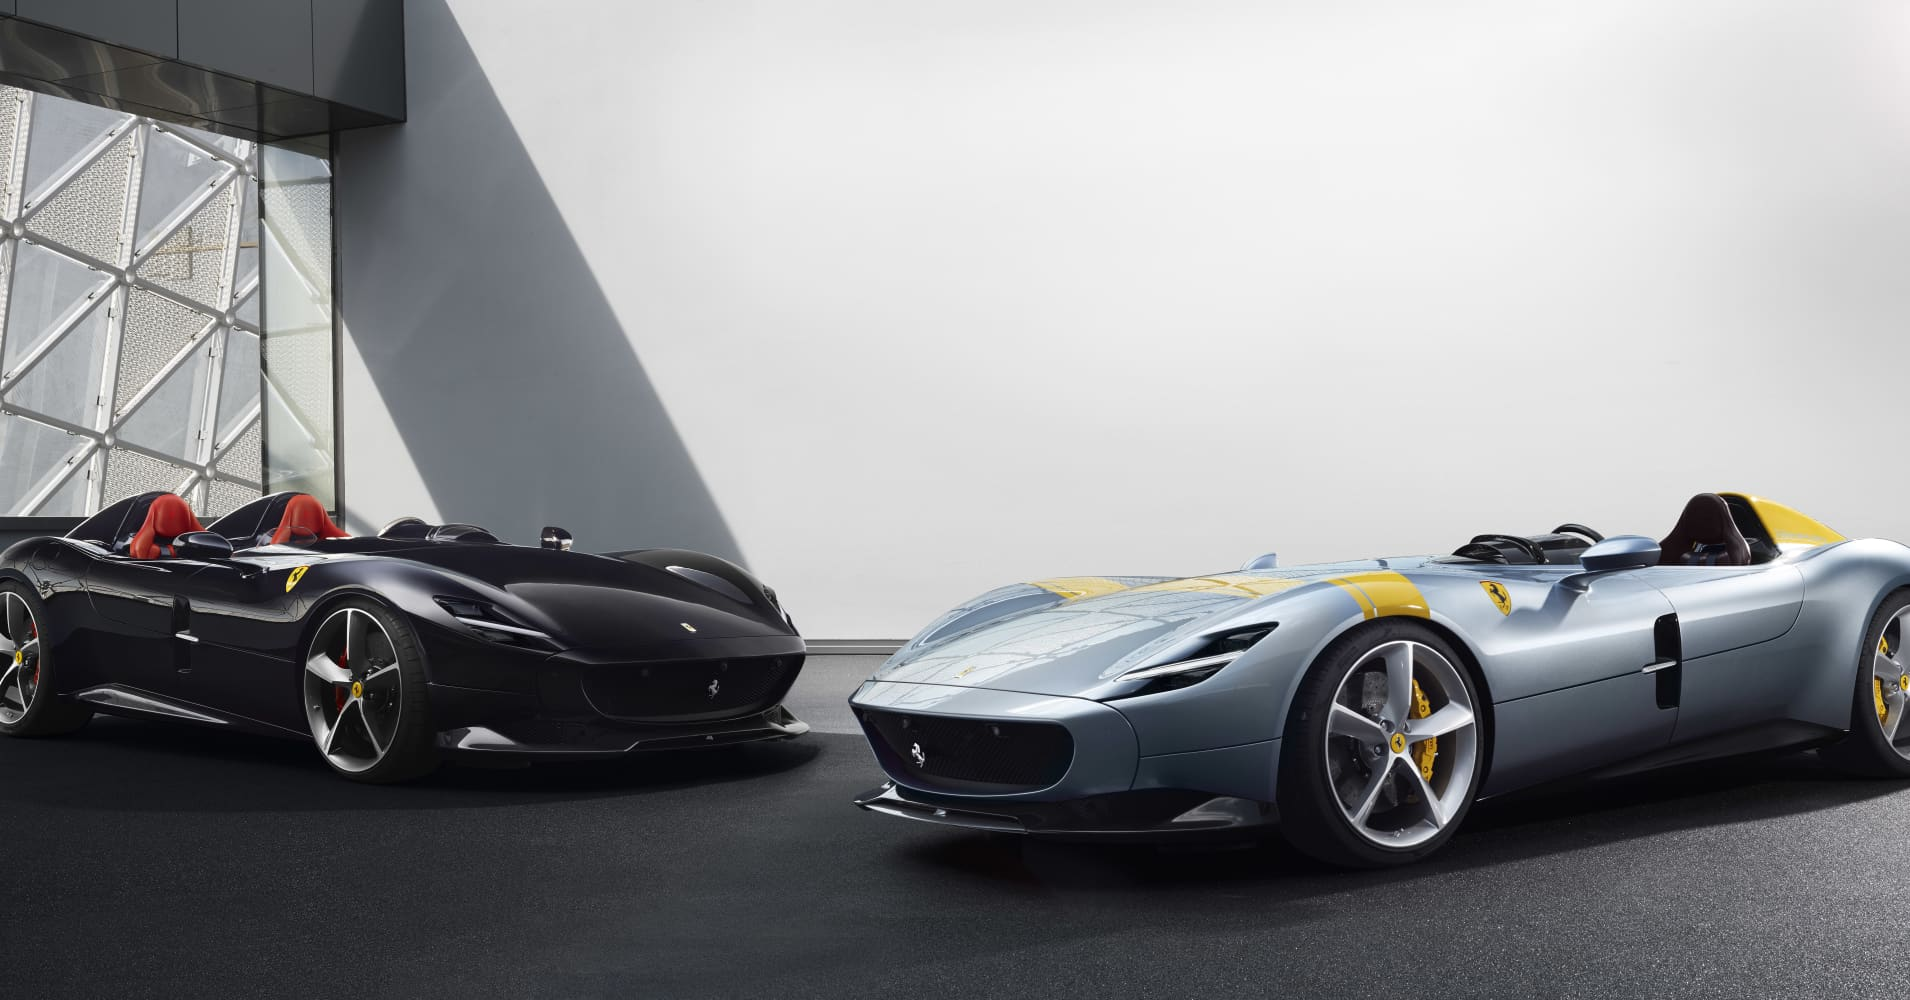 Photos Ferrari S Limited Edition Monza Sp1 Has No Windshield Or Roof